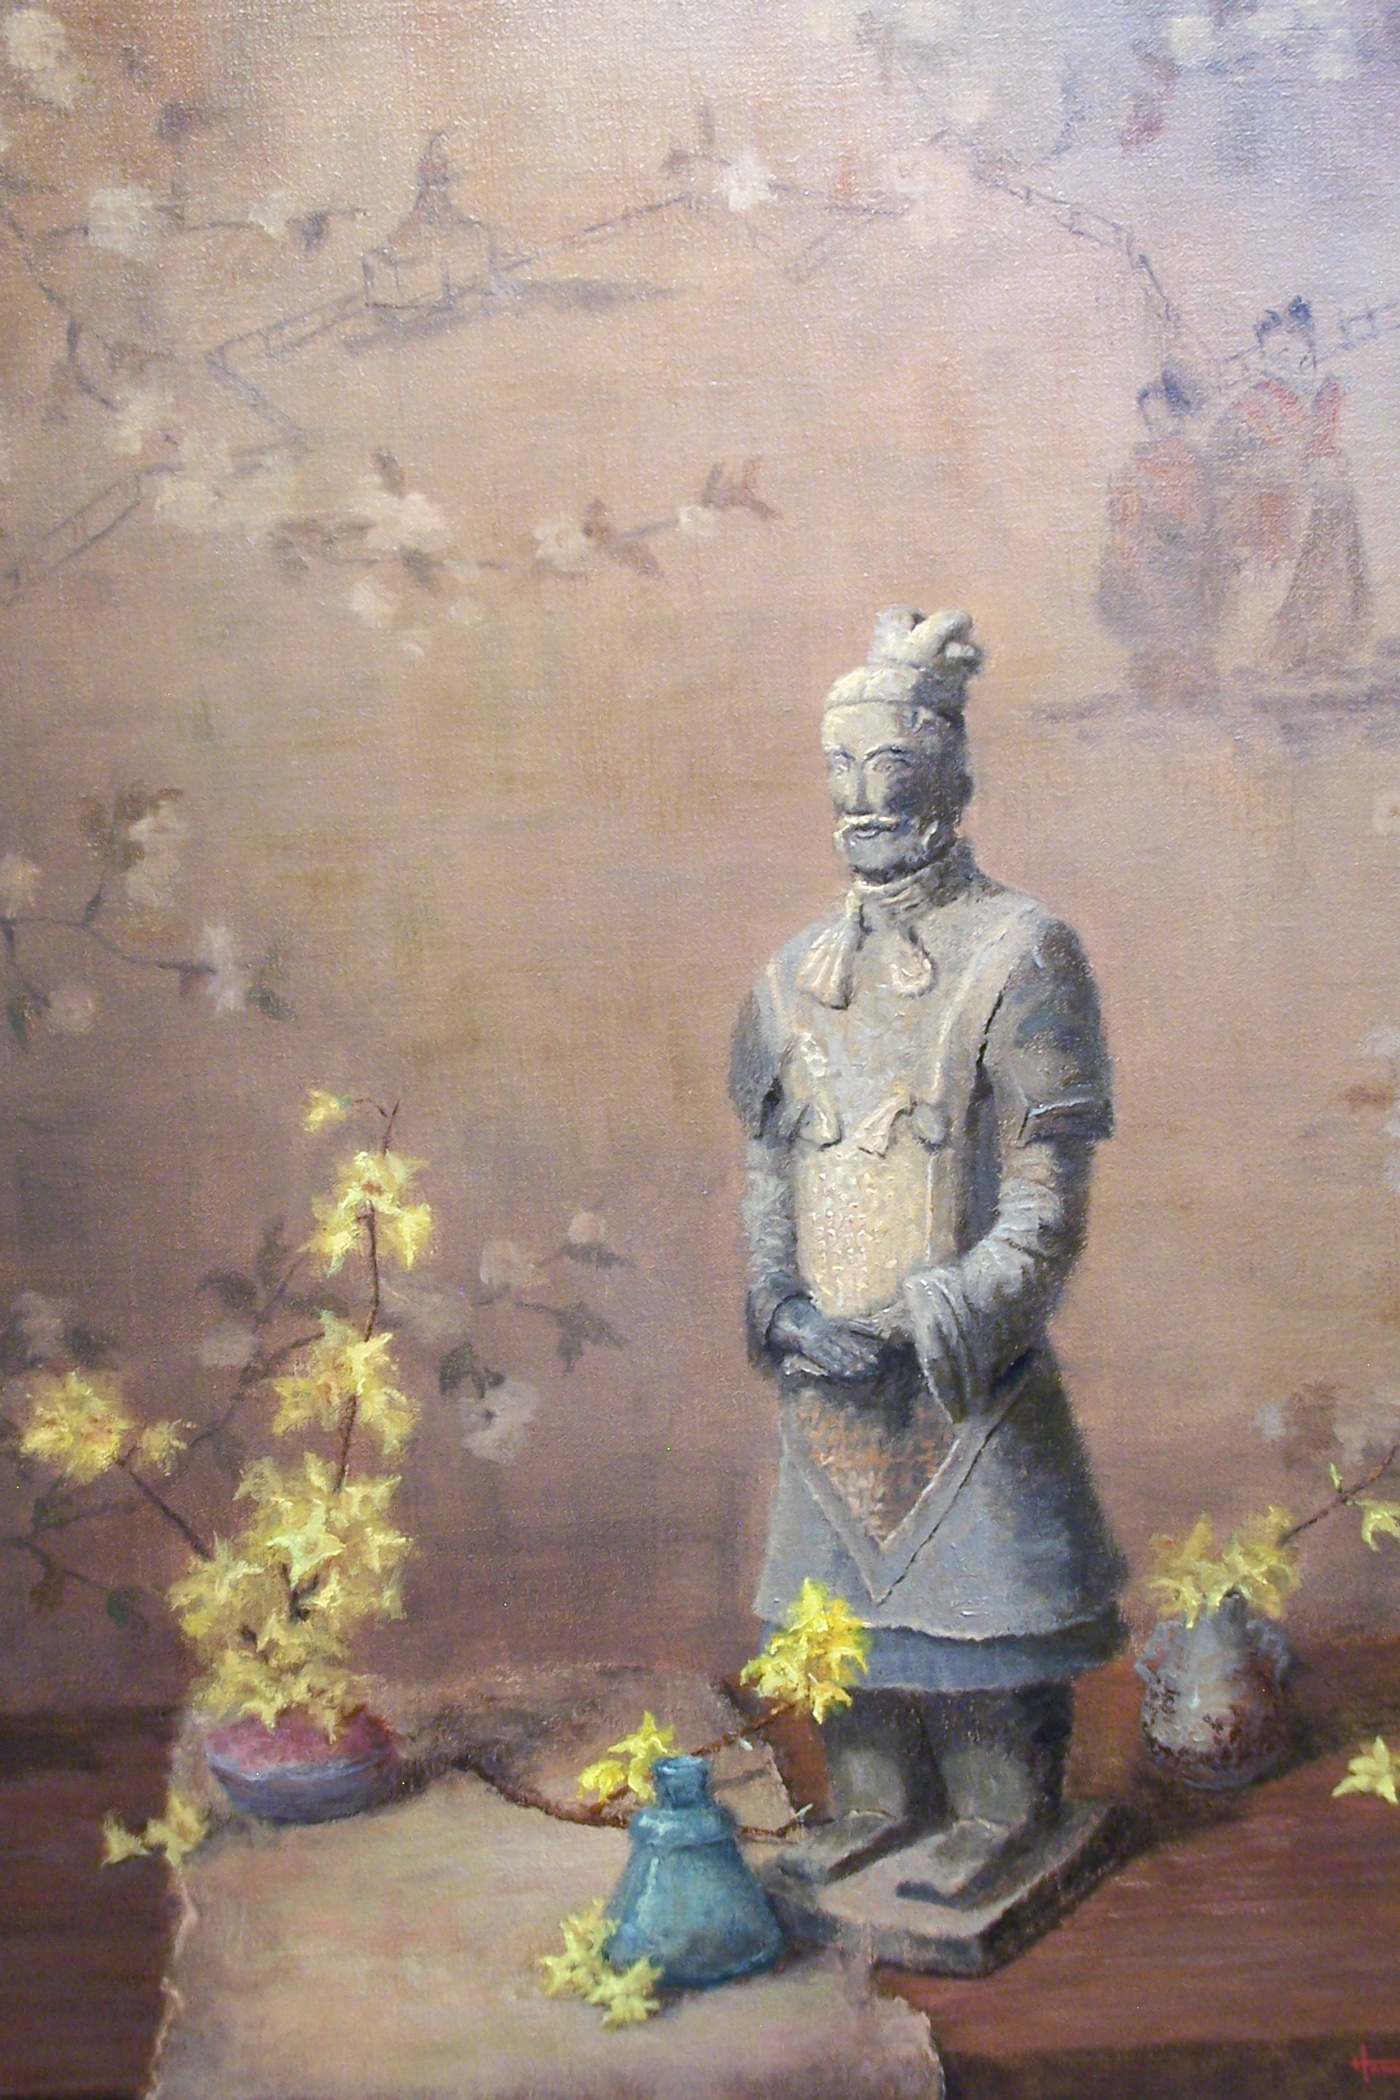 Qin Shi Huang Warrior (oil on linen 24x18)